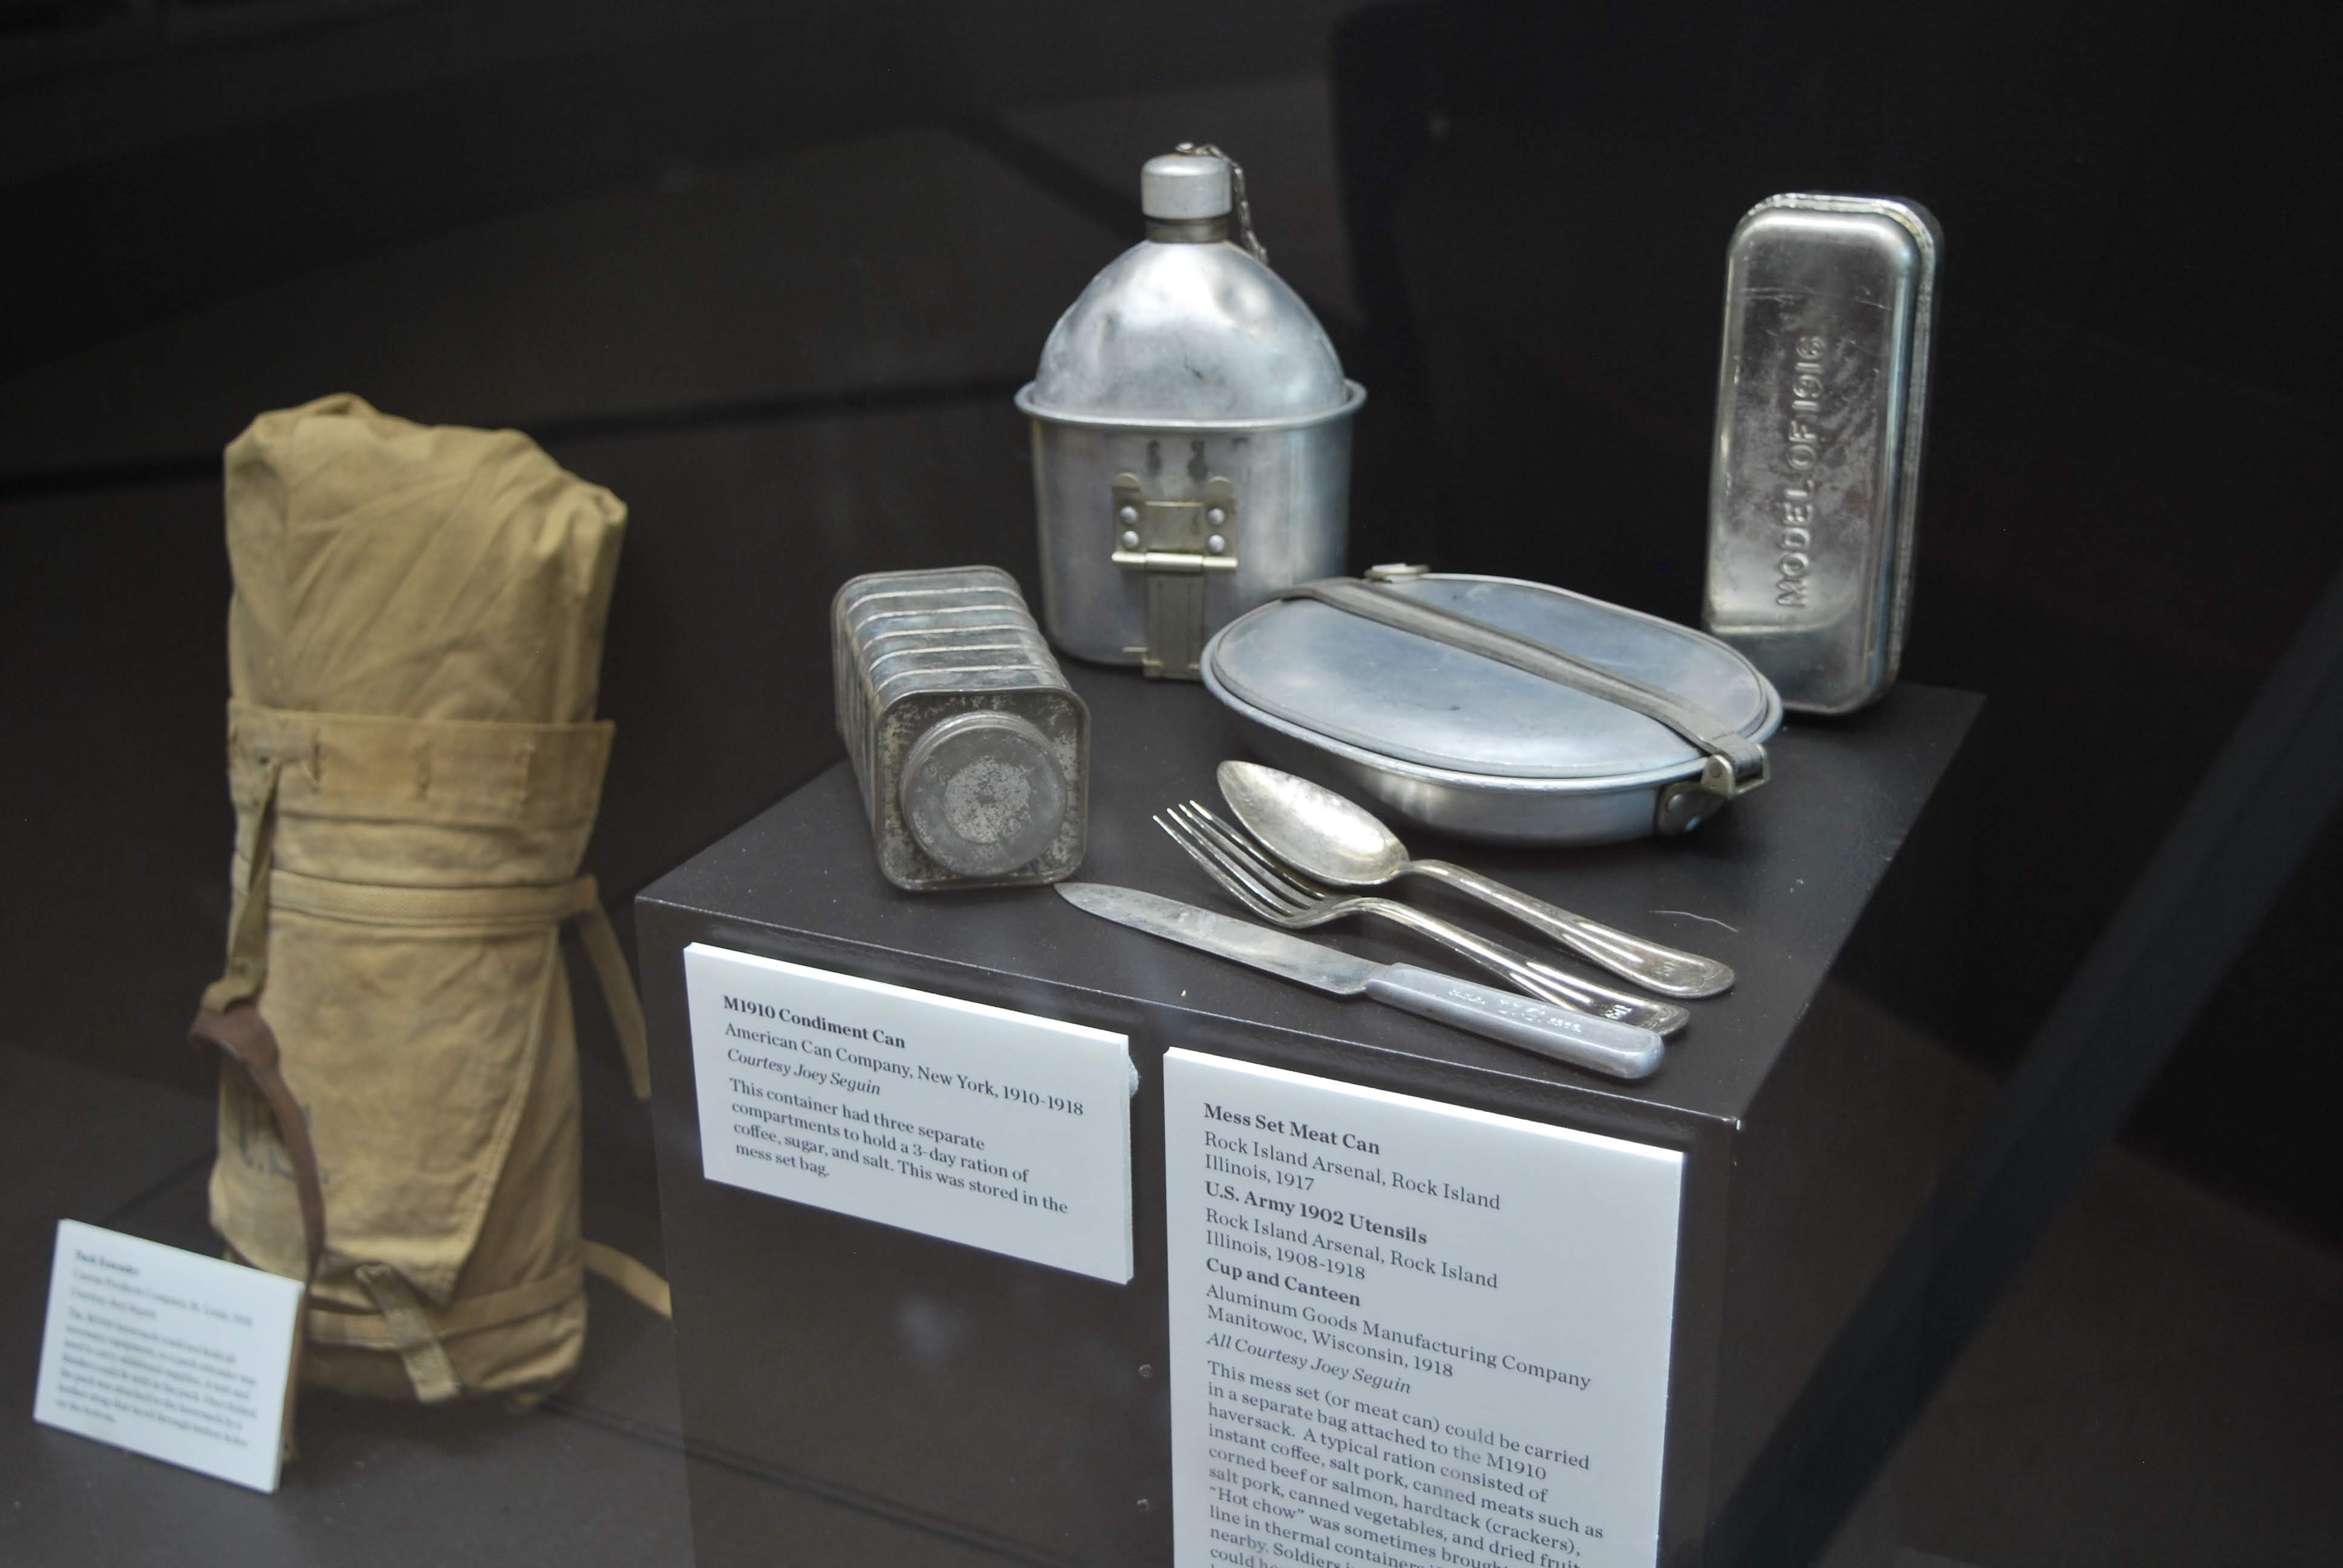 Picture of standard US army issue eating utensils and dishes